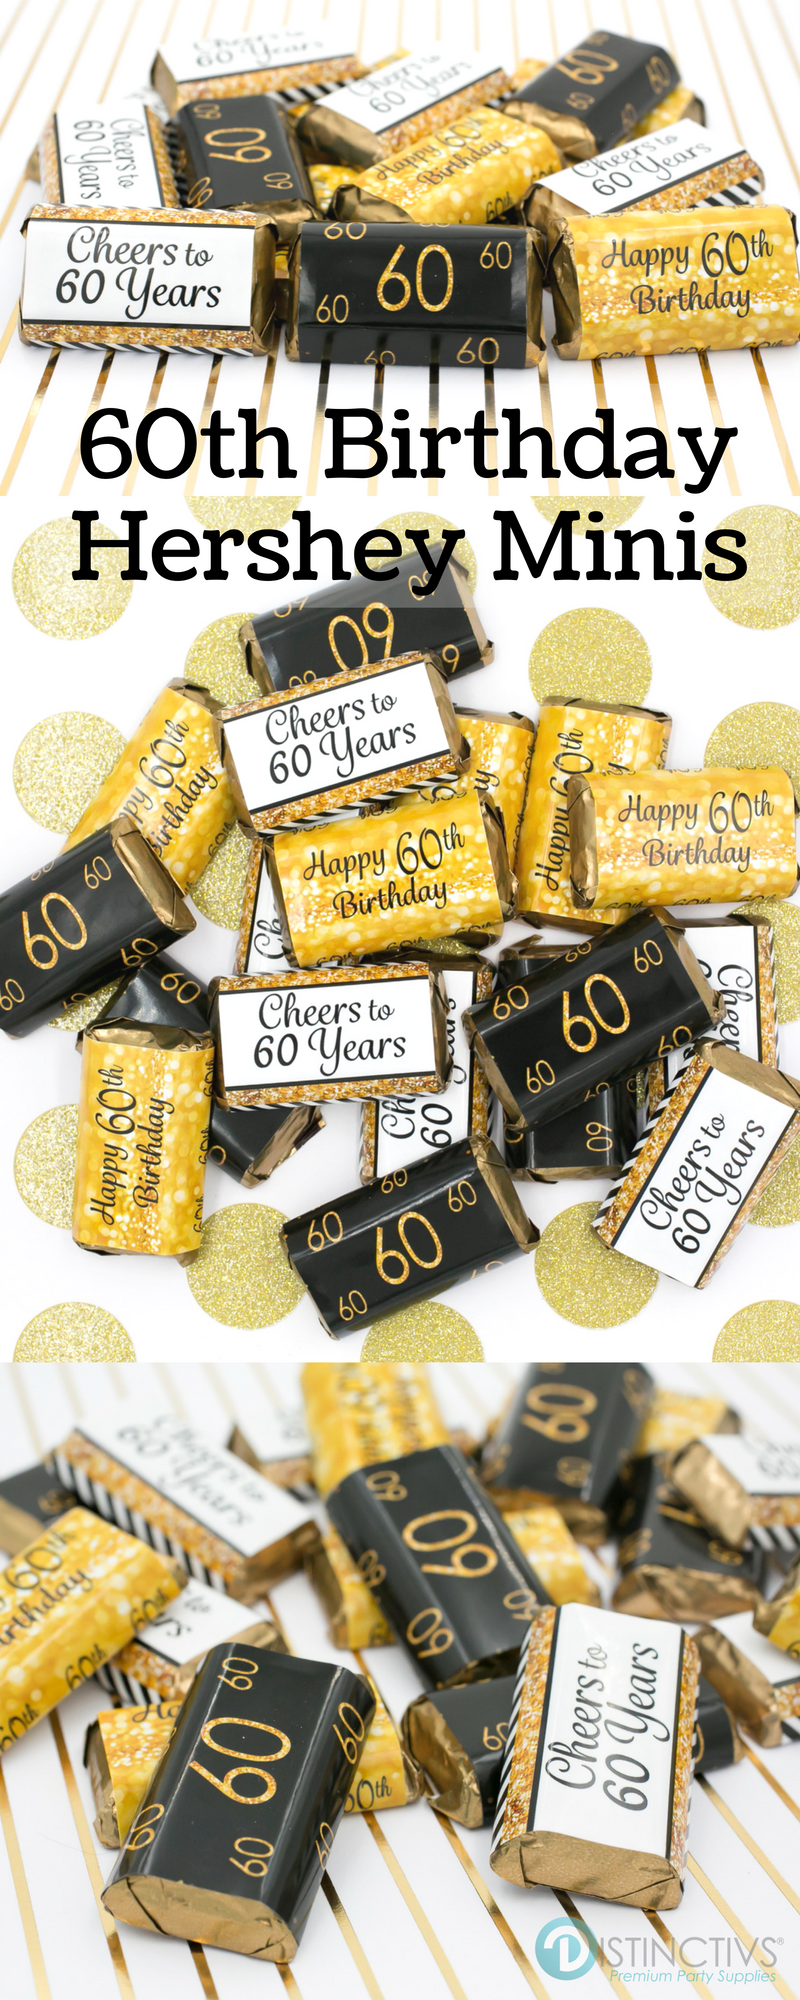 Black And Gold Stickers That Are Designed To Wrap Perfectly Around HersheysR Miniature Bars 60thbirthday 60thbirthdayideas